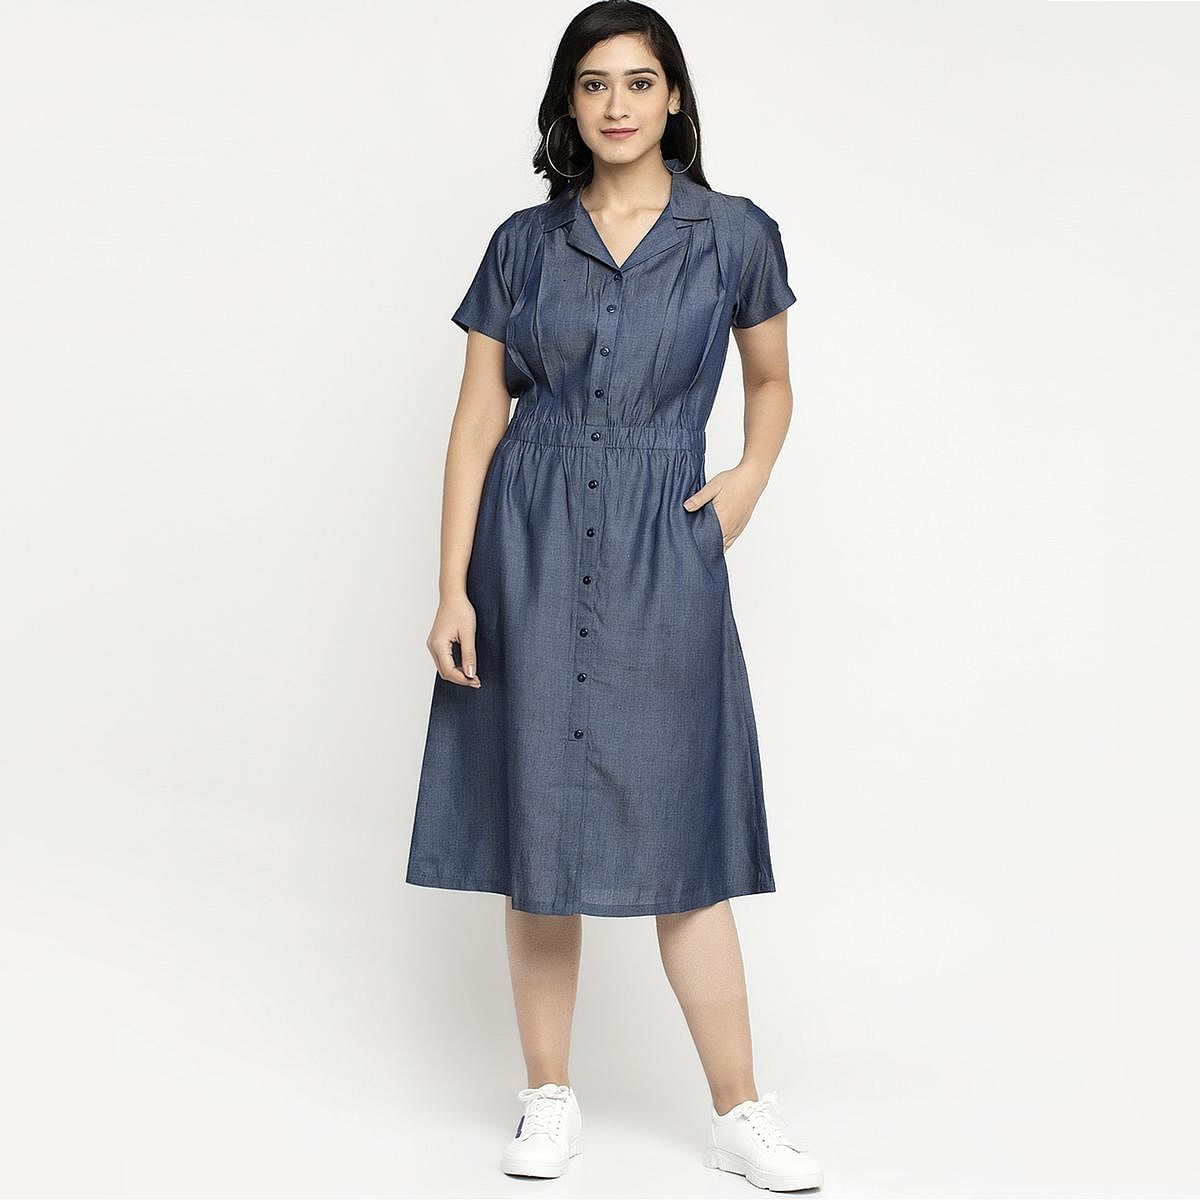 Ayaany - Women Blue Colored Casual Cotton Dress